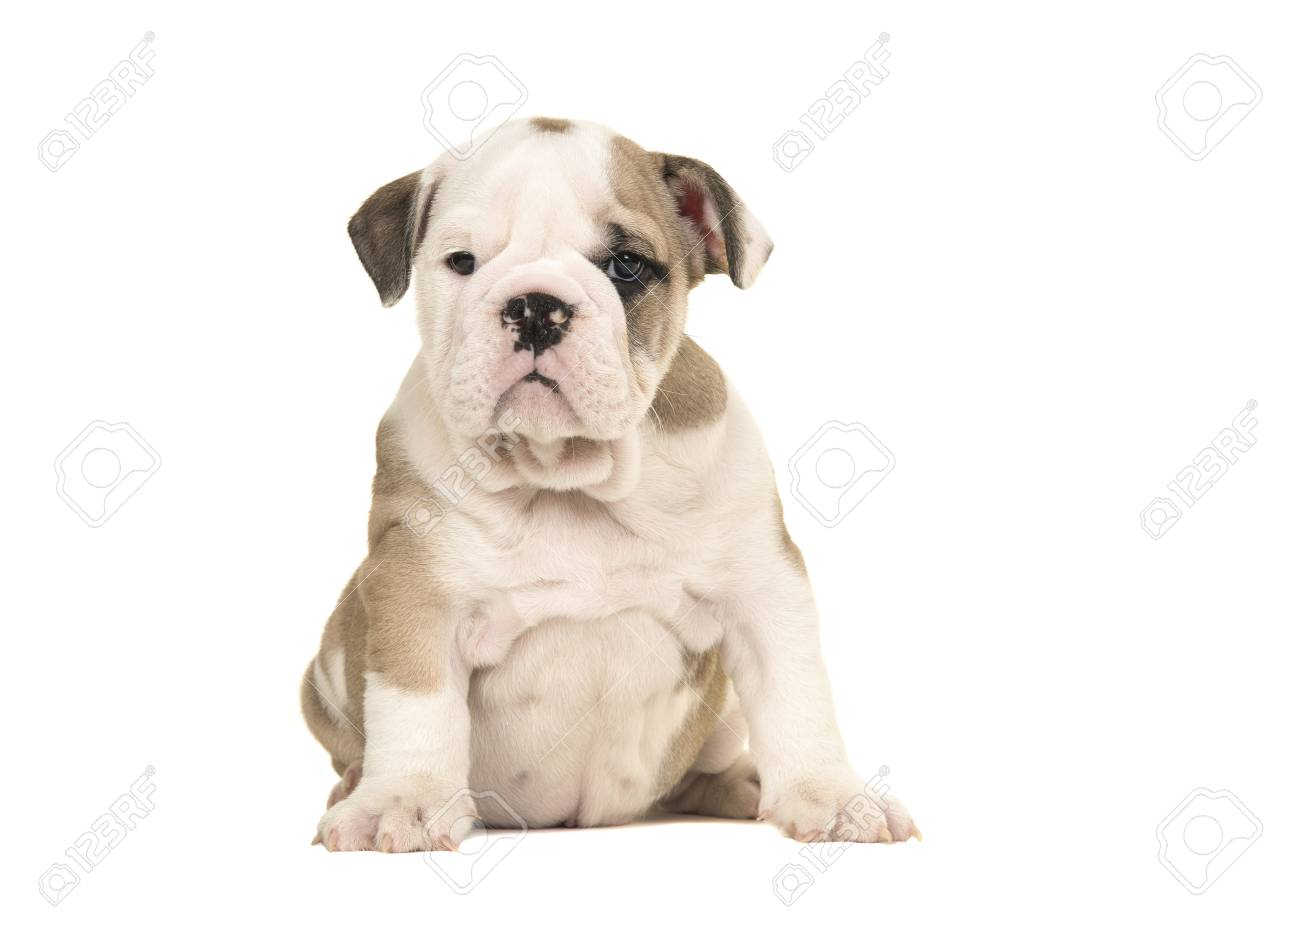 Brown and white english bulldog puppy sitting and looking at